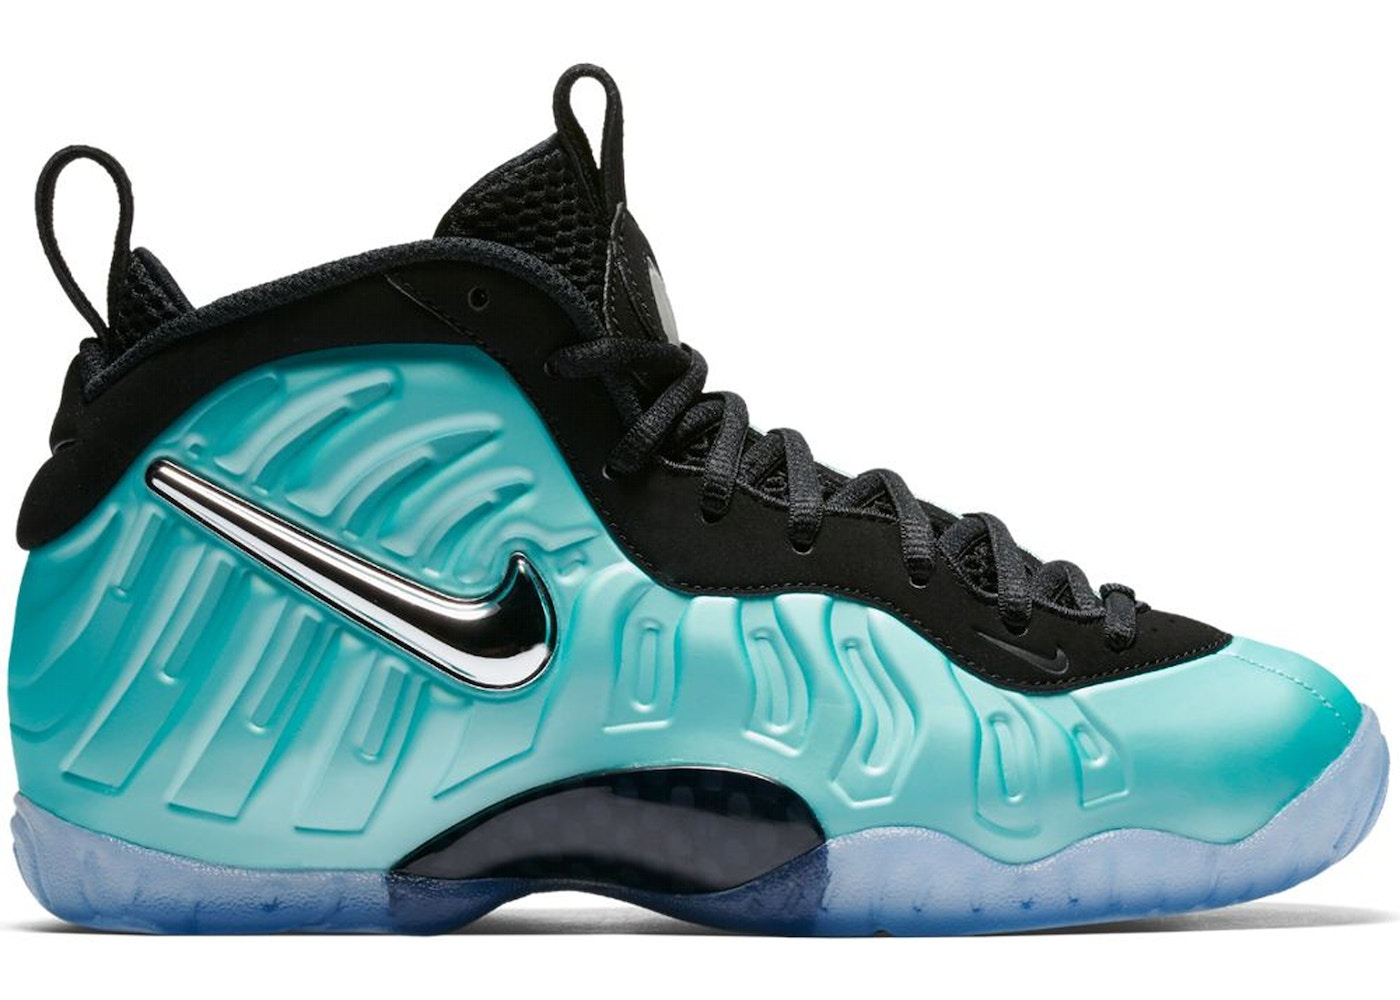 9ab93293d28 Air Foamposite Pro Island Green (GS) - 644792-303